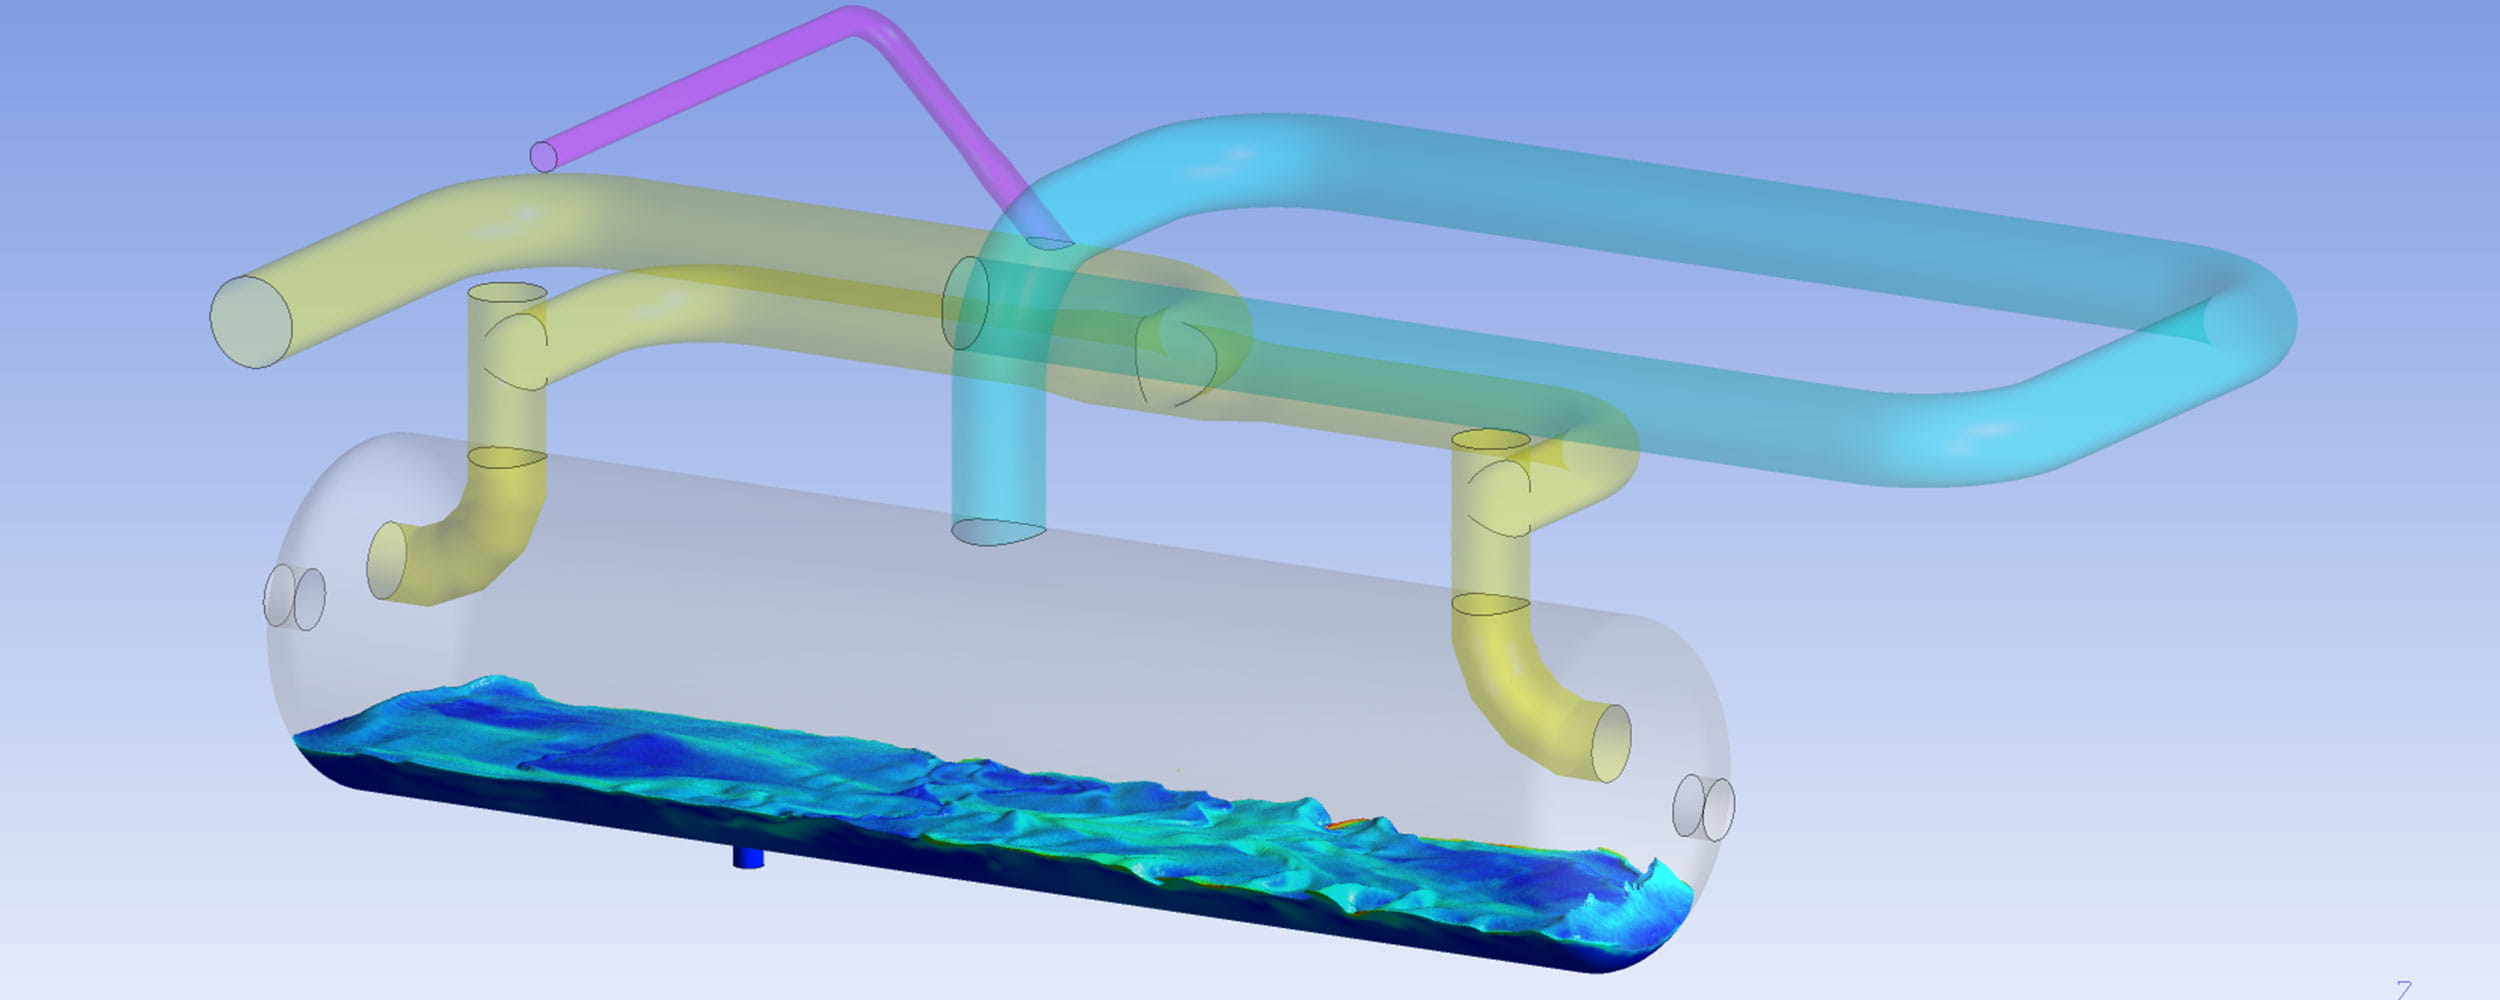 Computation fluid dynamic model of knock-out drum